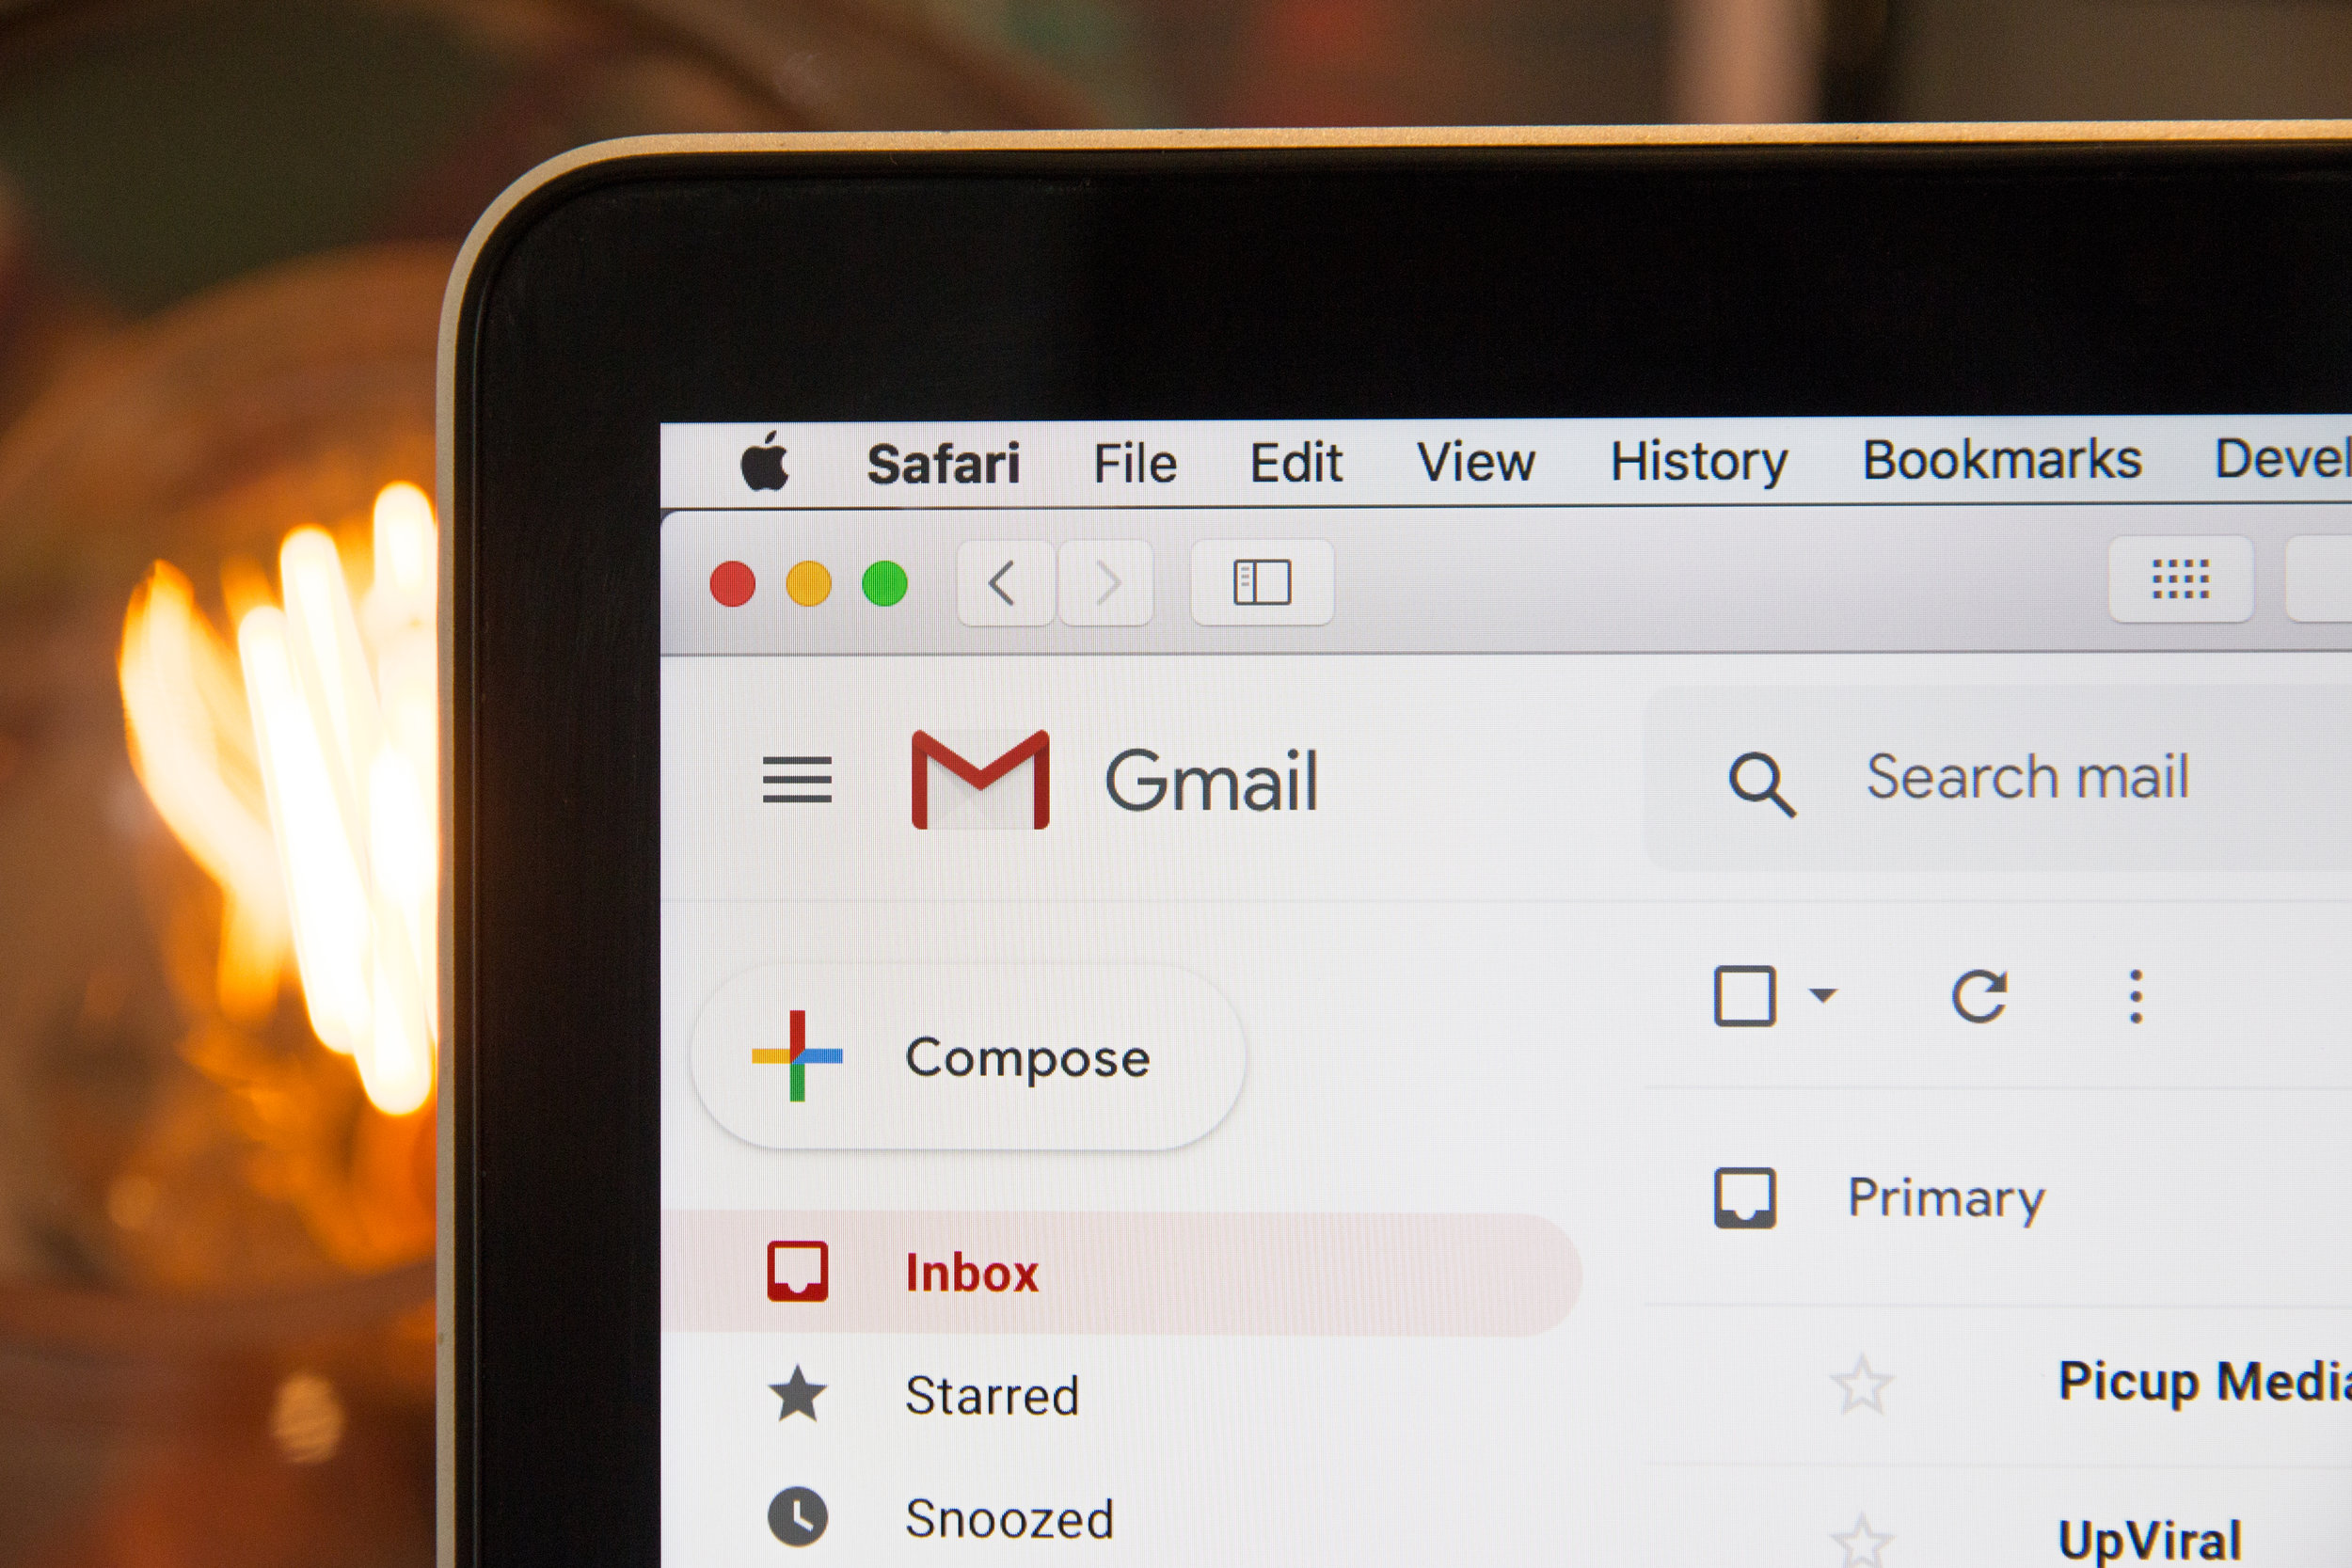 Email marketing - Email marketing is a cost-effective way to nurture relationships, and prime warm leads (i.e. email subscribers) to buy something from you.